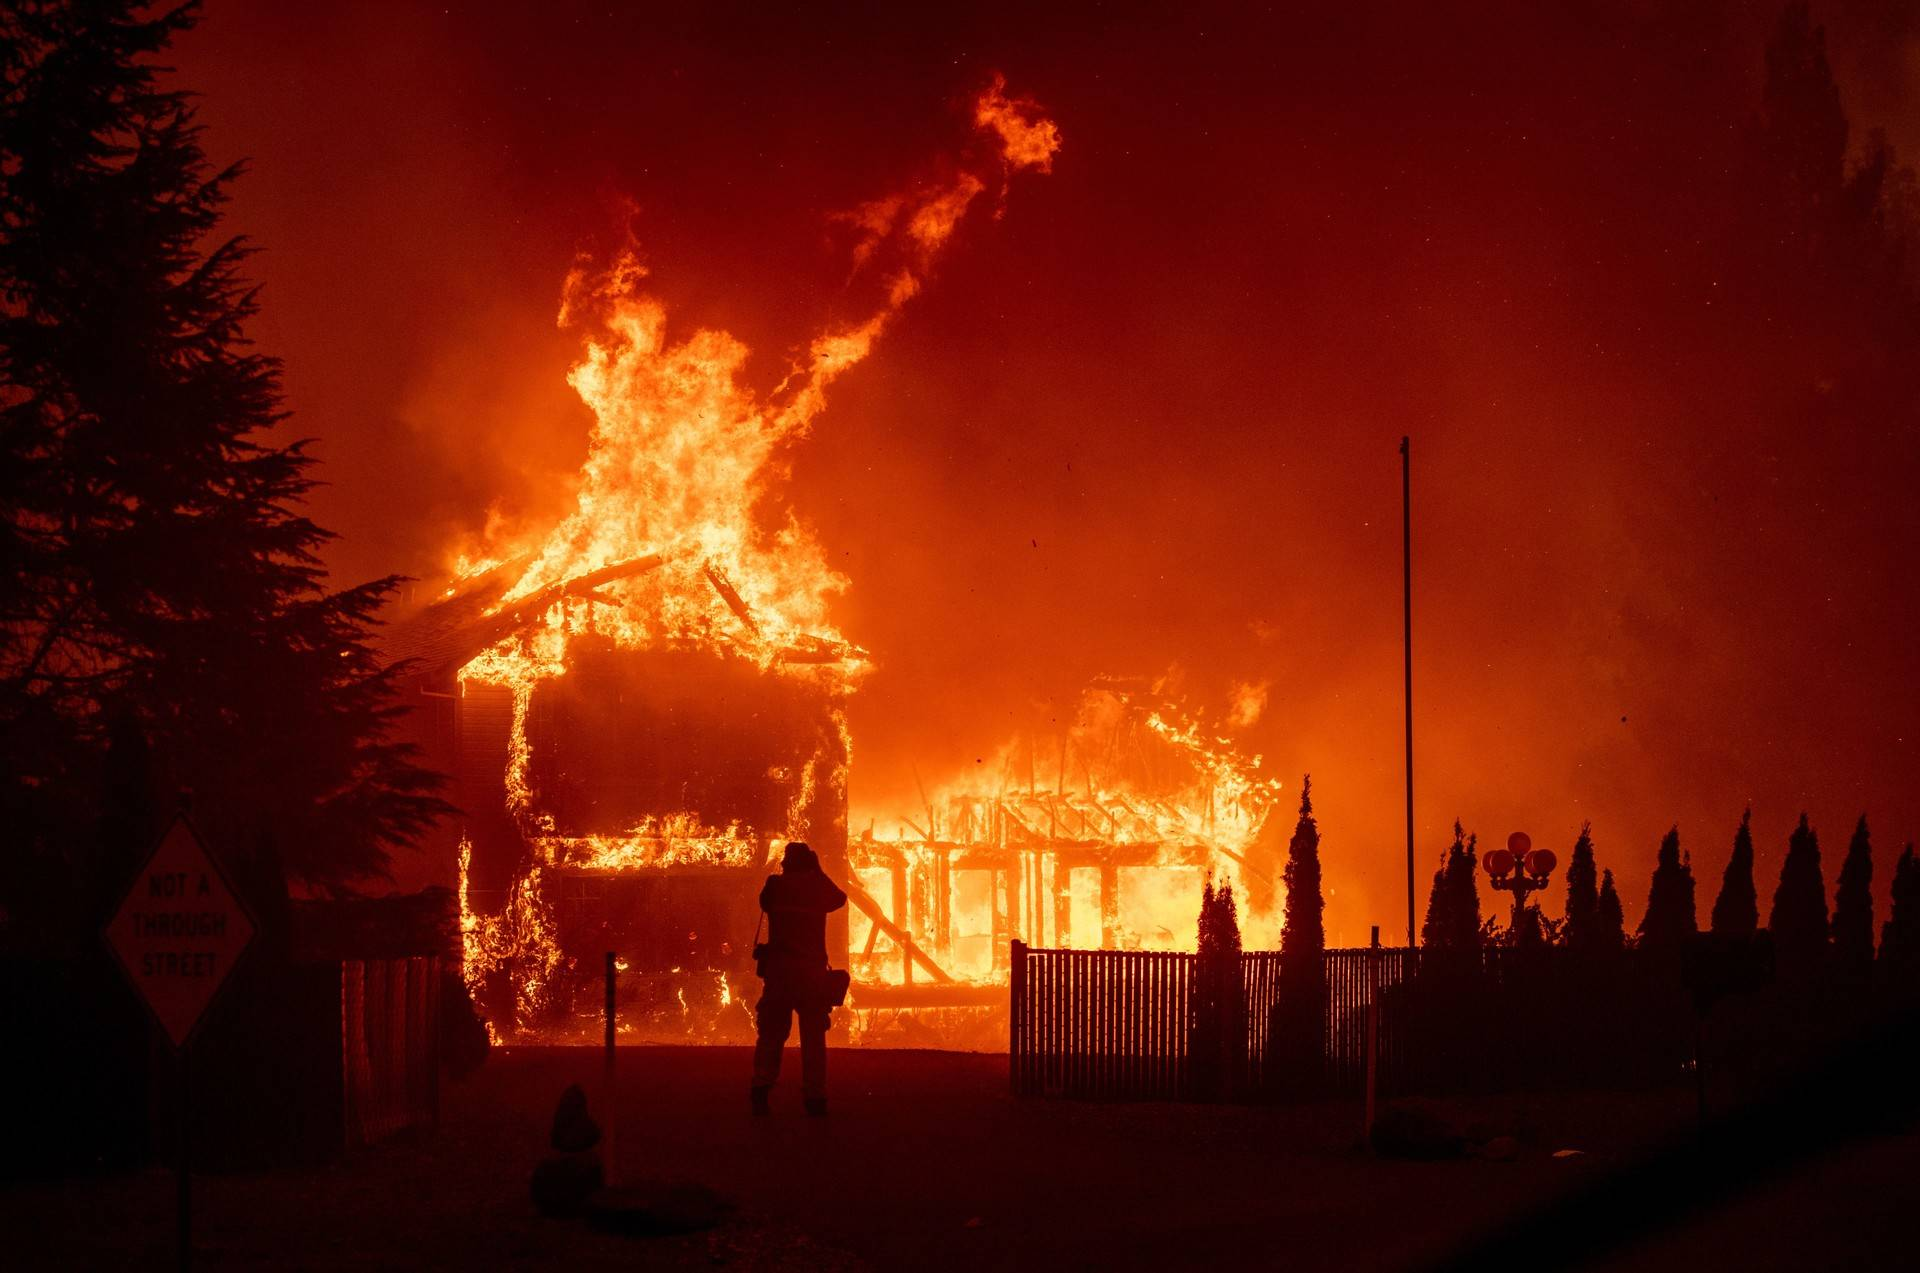 A home burns during the Camp Fire in Paradise, California. JOSH EDELSON/AFP/Getty Images